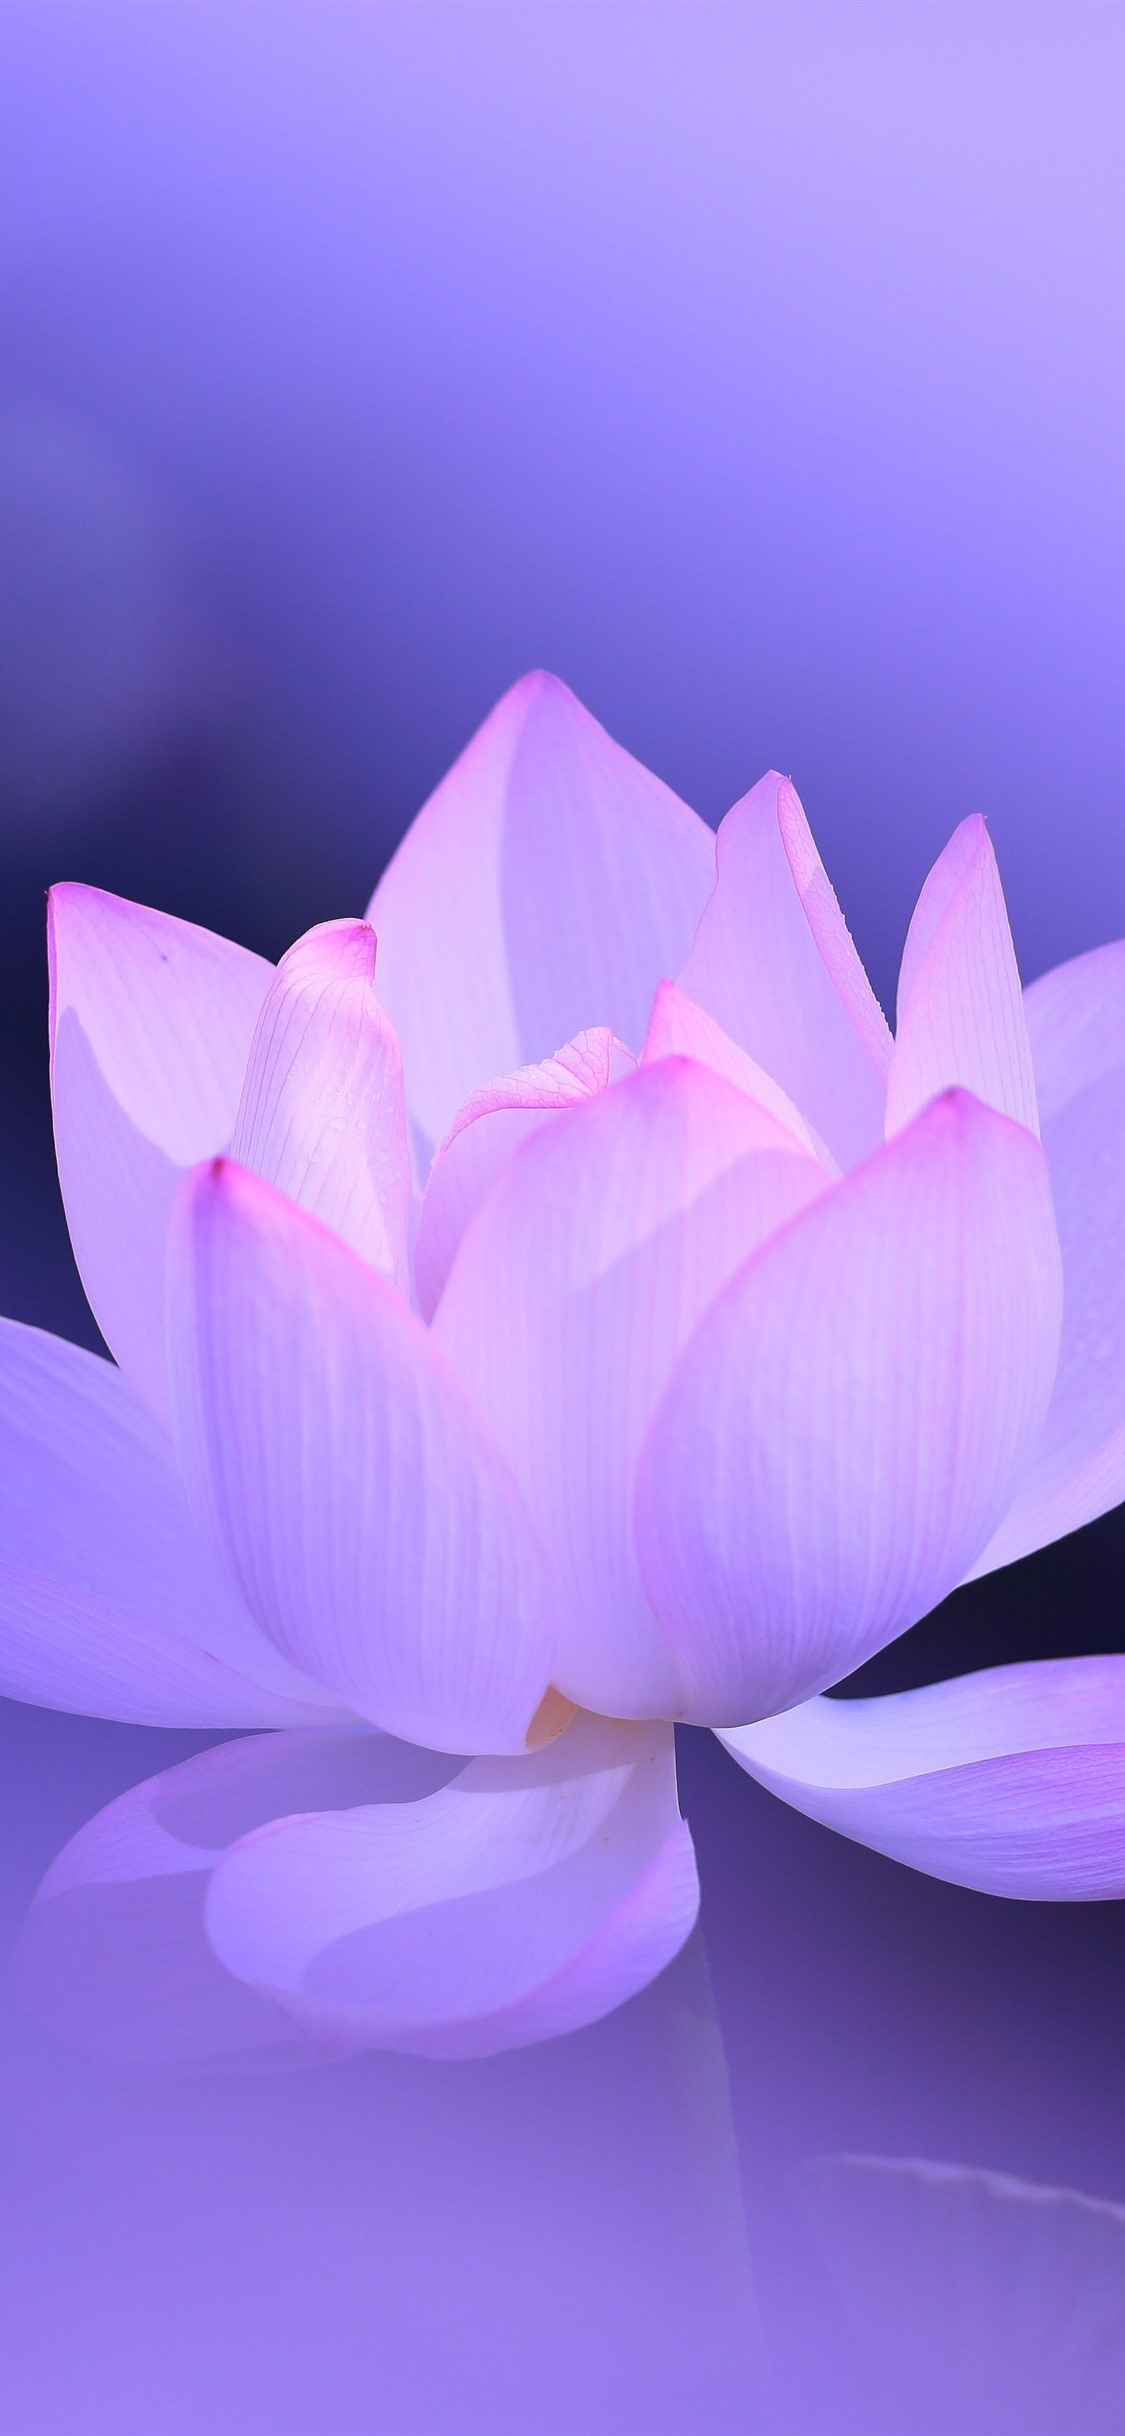 Pink Lotus Petals Purple Background Hazy Beautiful Flower 1242x2688 Iphone 11 Pro Xs Max Wallpaper Background Picture Image Collection by kaddu halima • last updated 6 days ago. pink lotus petals purple background